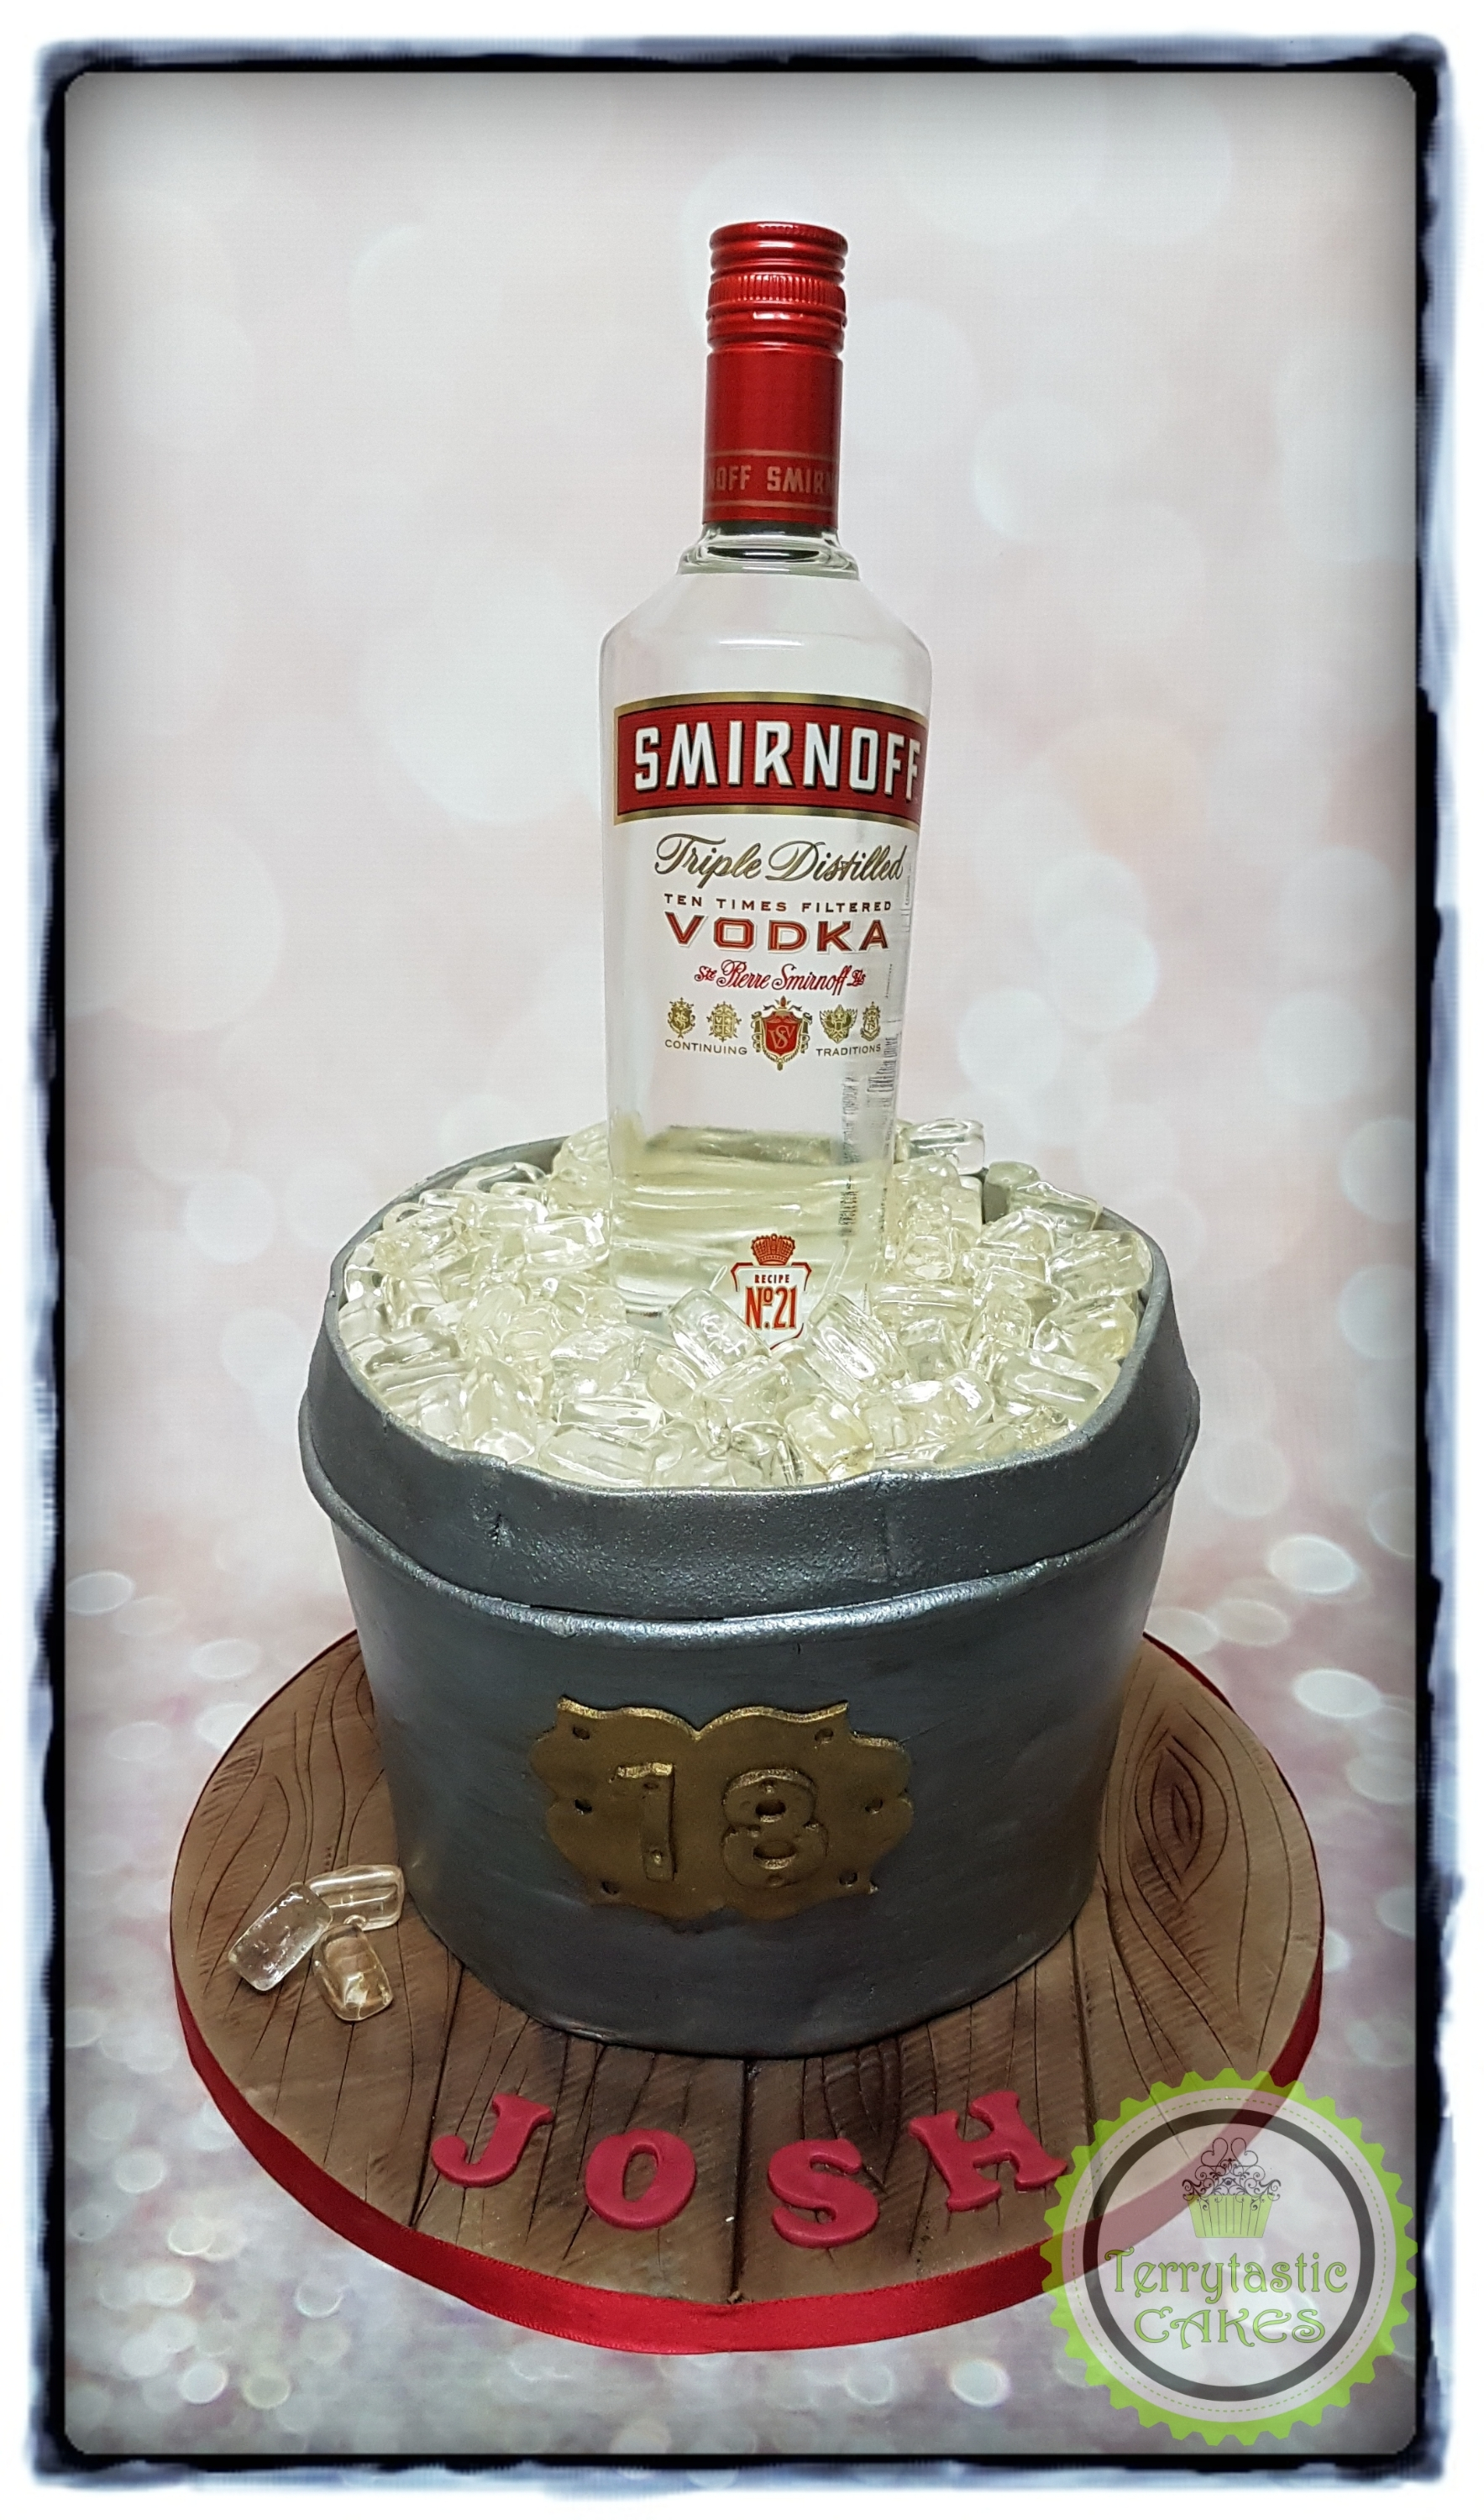 Enjoyable Vodka Bucket 18Th Cake Terrytastic Cakes Funny Birthday Cards Online Alyptdamsfinfo